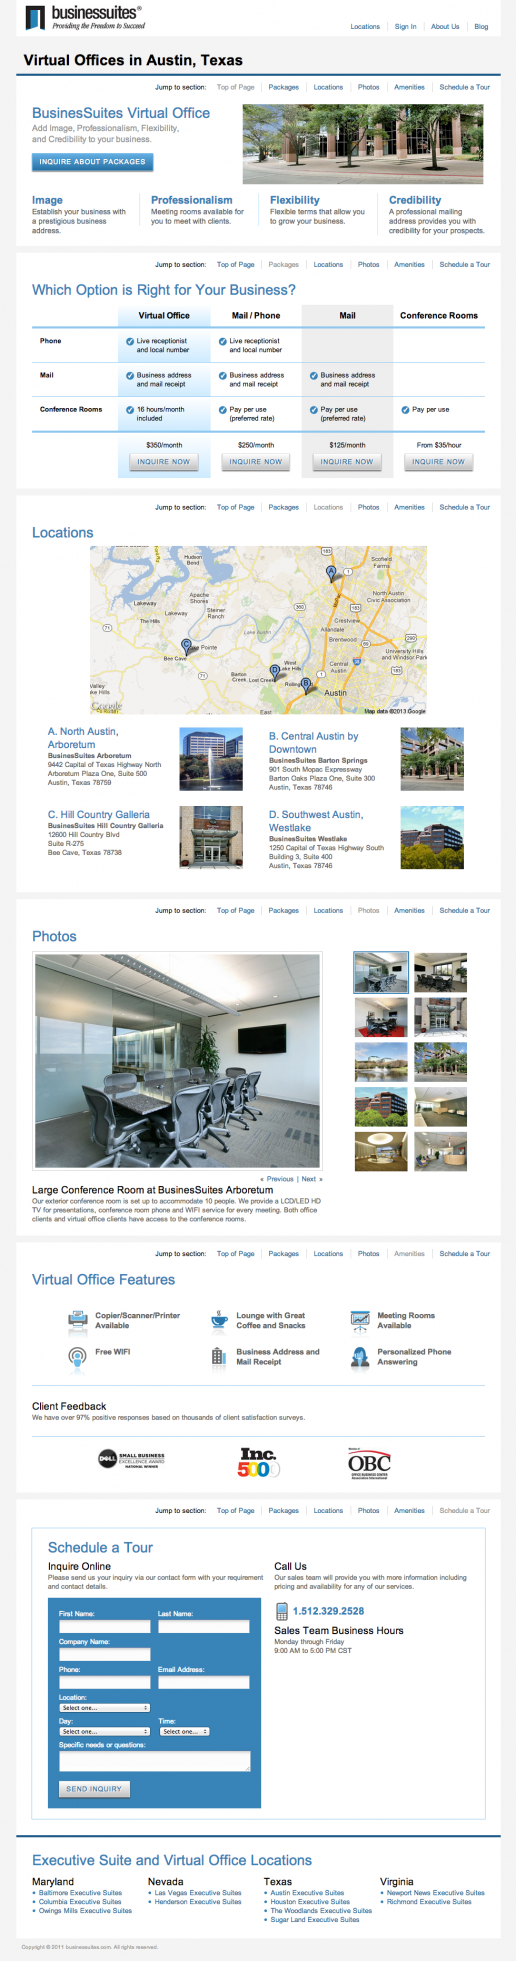 BusinesSuites Virtual Offices Page – version 2